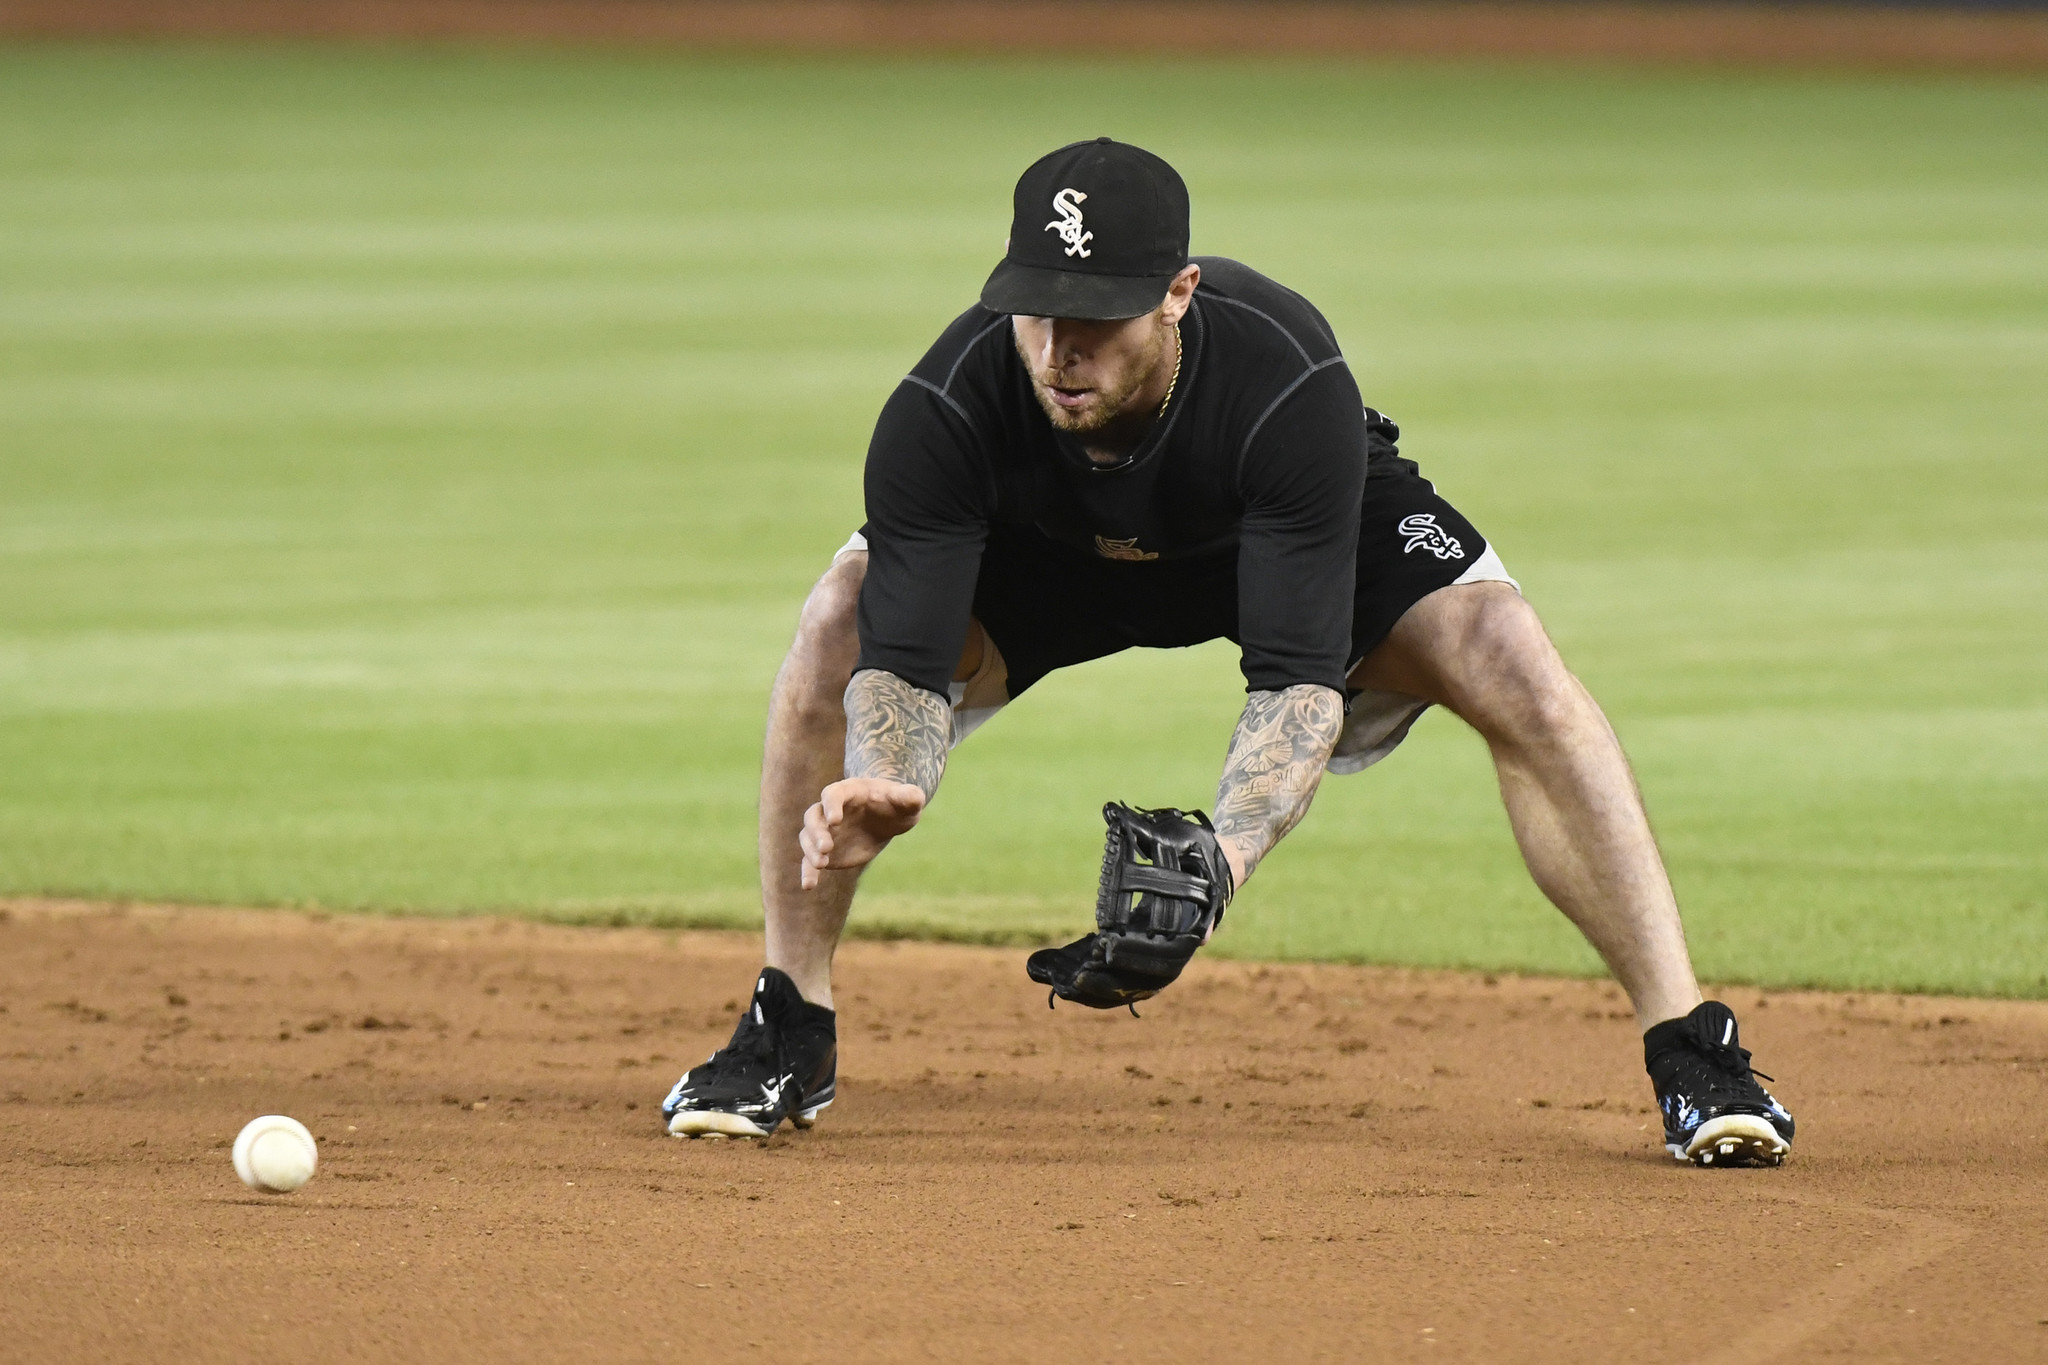 White Sox second baseman Brett Lawrie heads out on rehab assignment